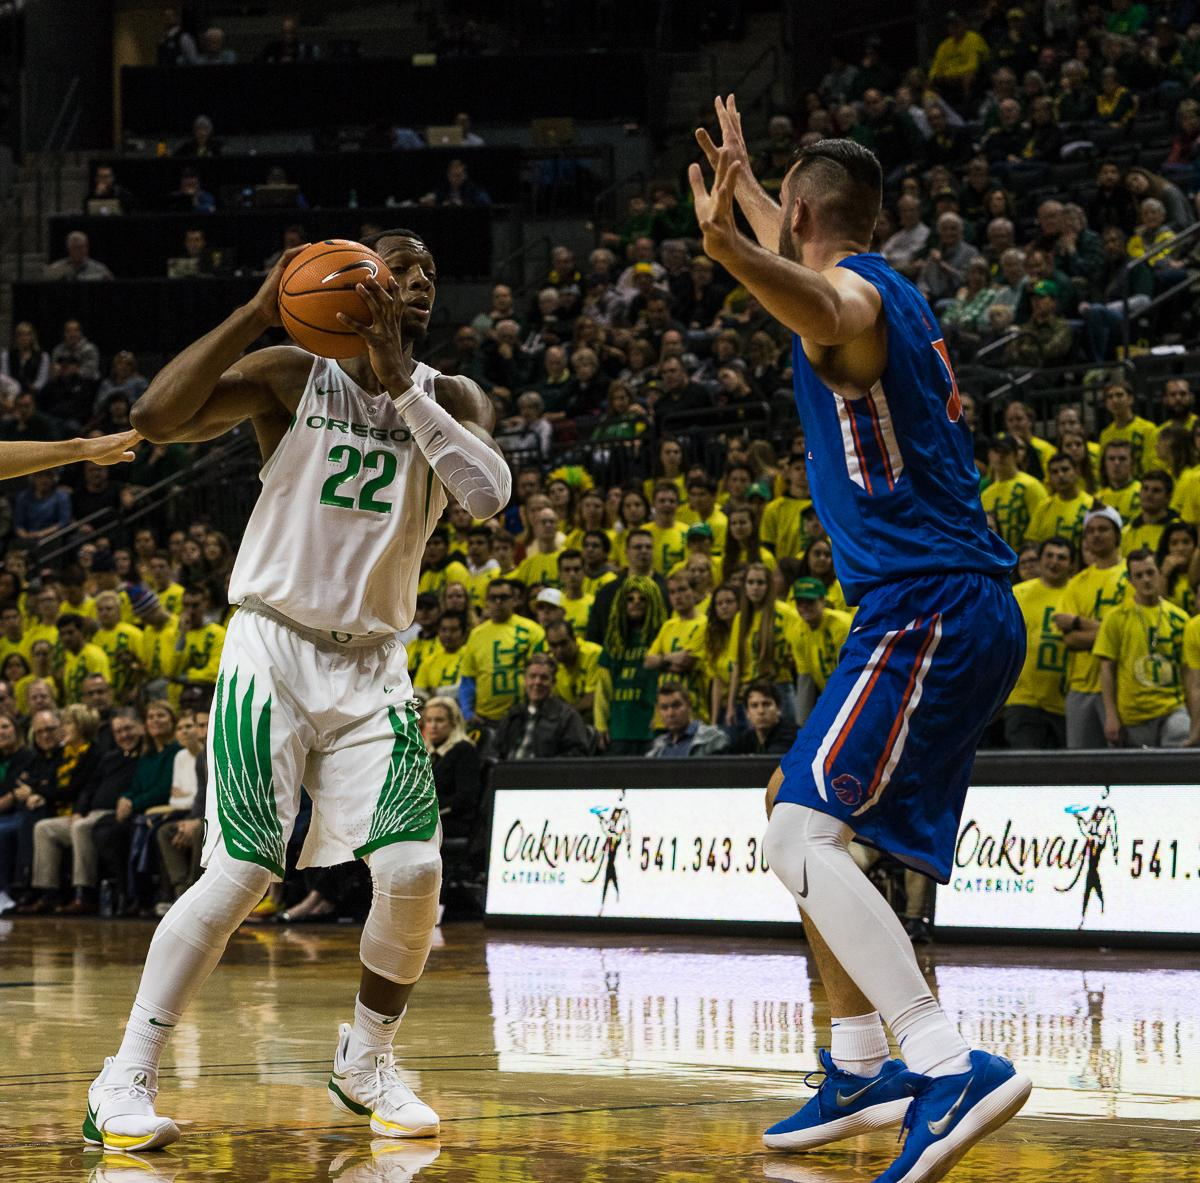 University of Oregon Duck MiKyle McIntosh (#22) is challenged by Boise State's Zach Haney (#11). The Boise State Broncos defeated the University of Oregon Ducks 73 – 70 at Matthew Knight Arena in Eugene, Ore., on December 1, 2017. Photo by Kit MacAvoy, Oregon News Lab